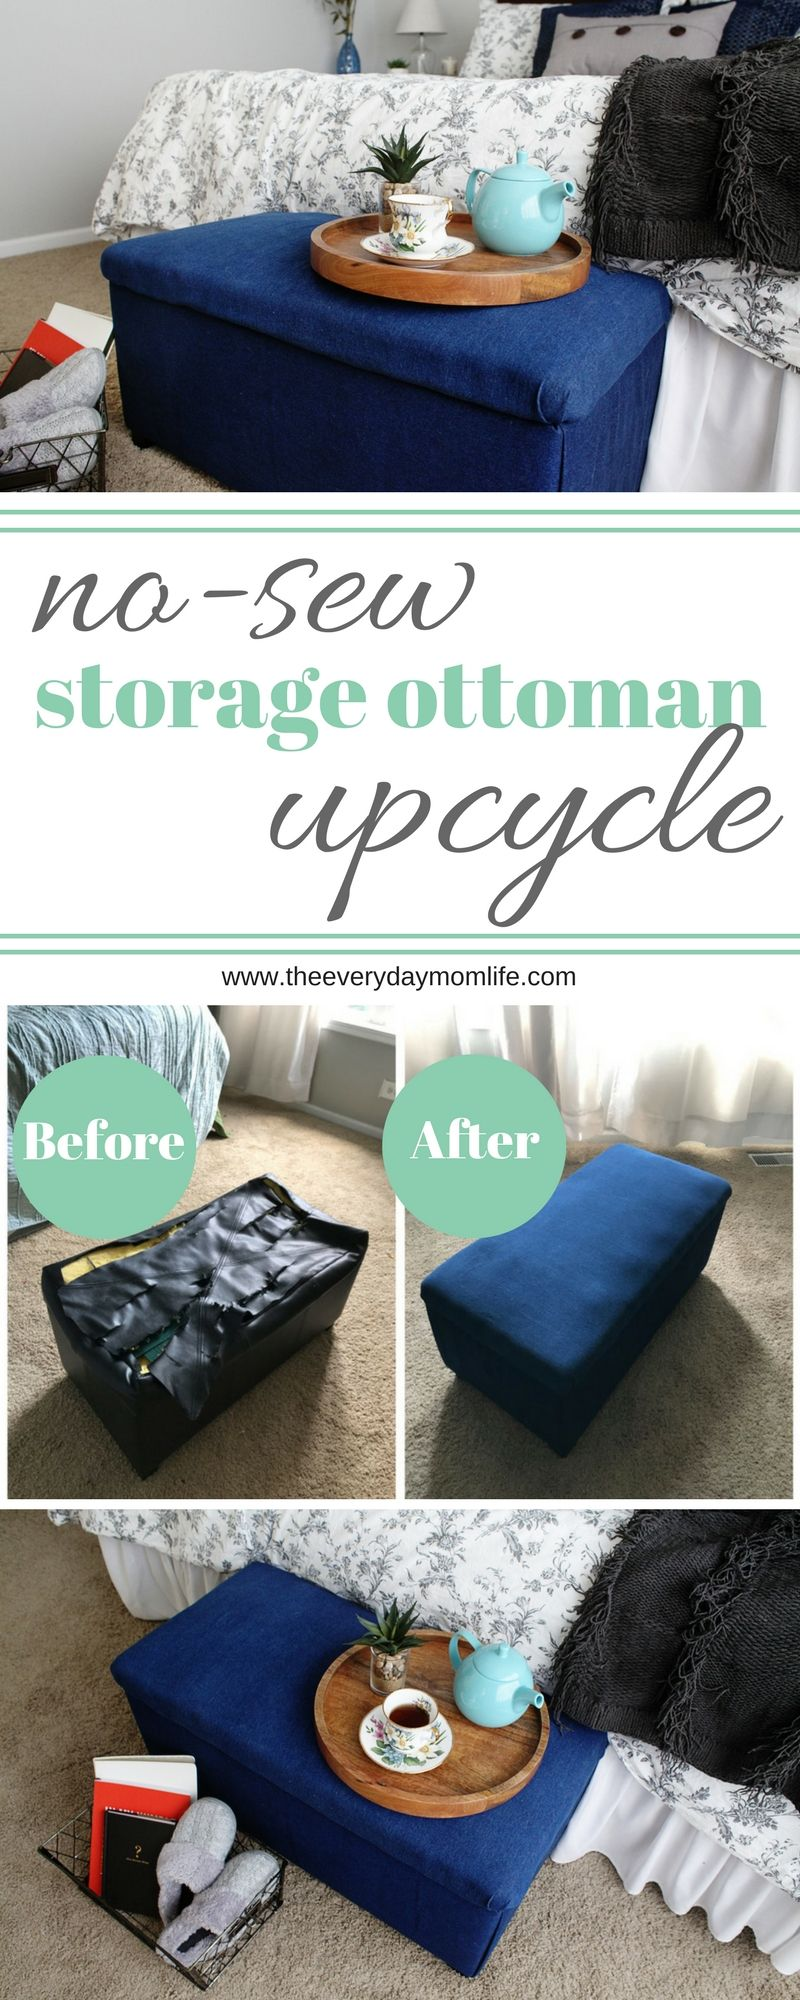 Peachy No Sew Storage Ottoman Upcycle Best Of The Everyday Mom Gmtry Best Dining Table And Chair Ideas Images Gmtryco